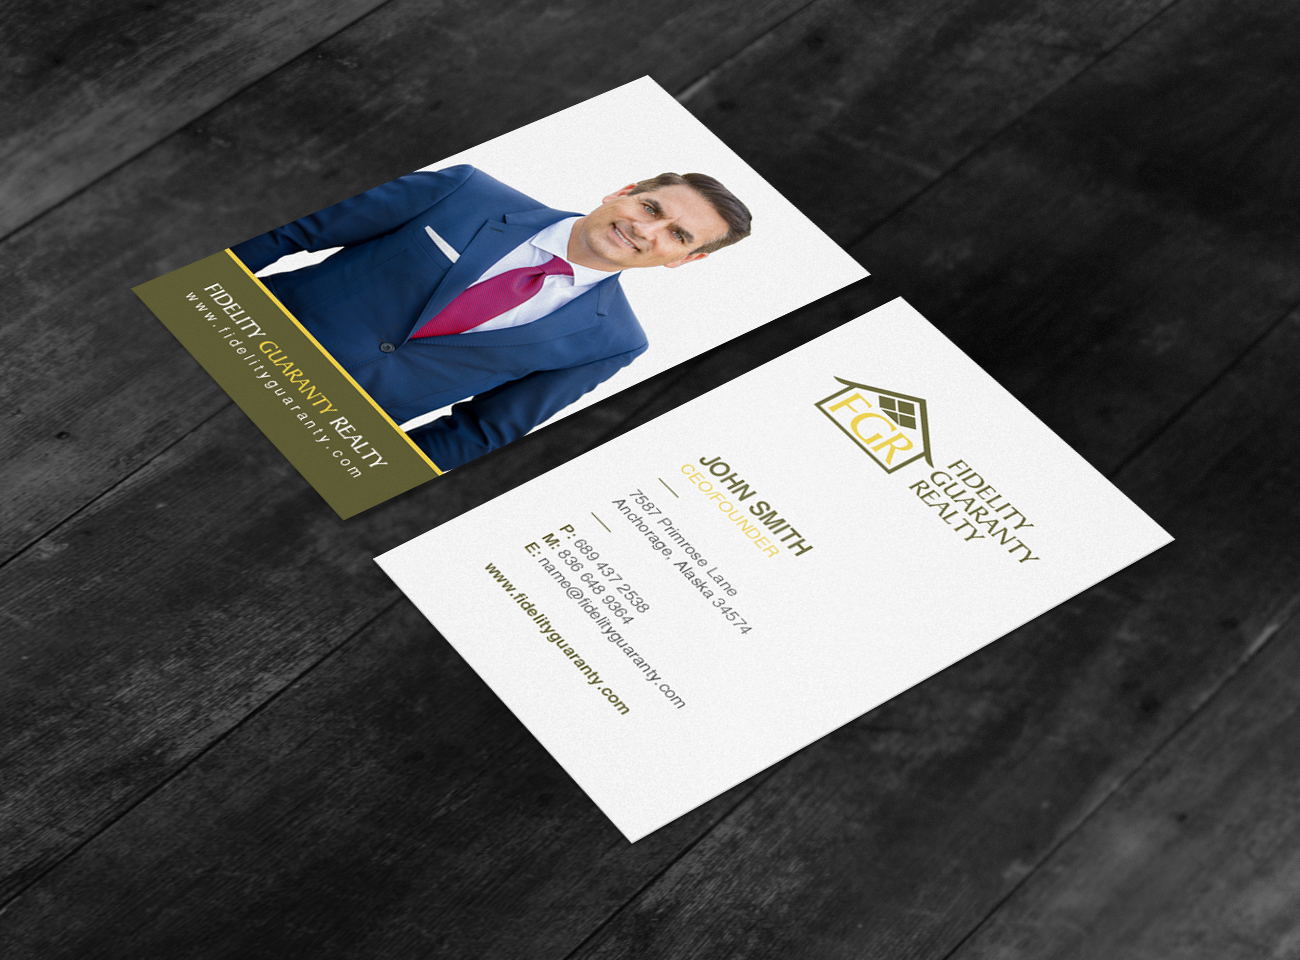 Modern upmarket real estate agent business card design for a business card design by chandrayaaneative for this project design 16638218 colourmoves